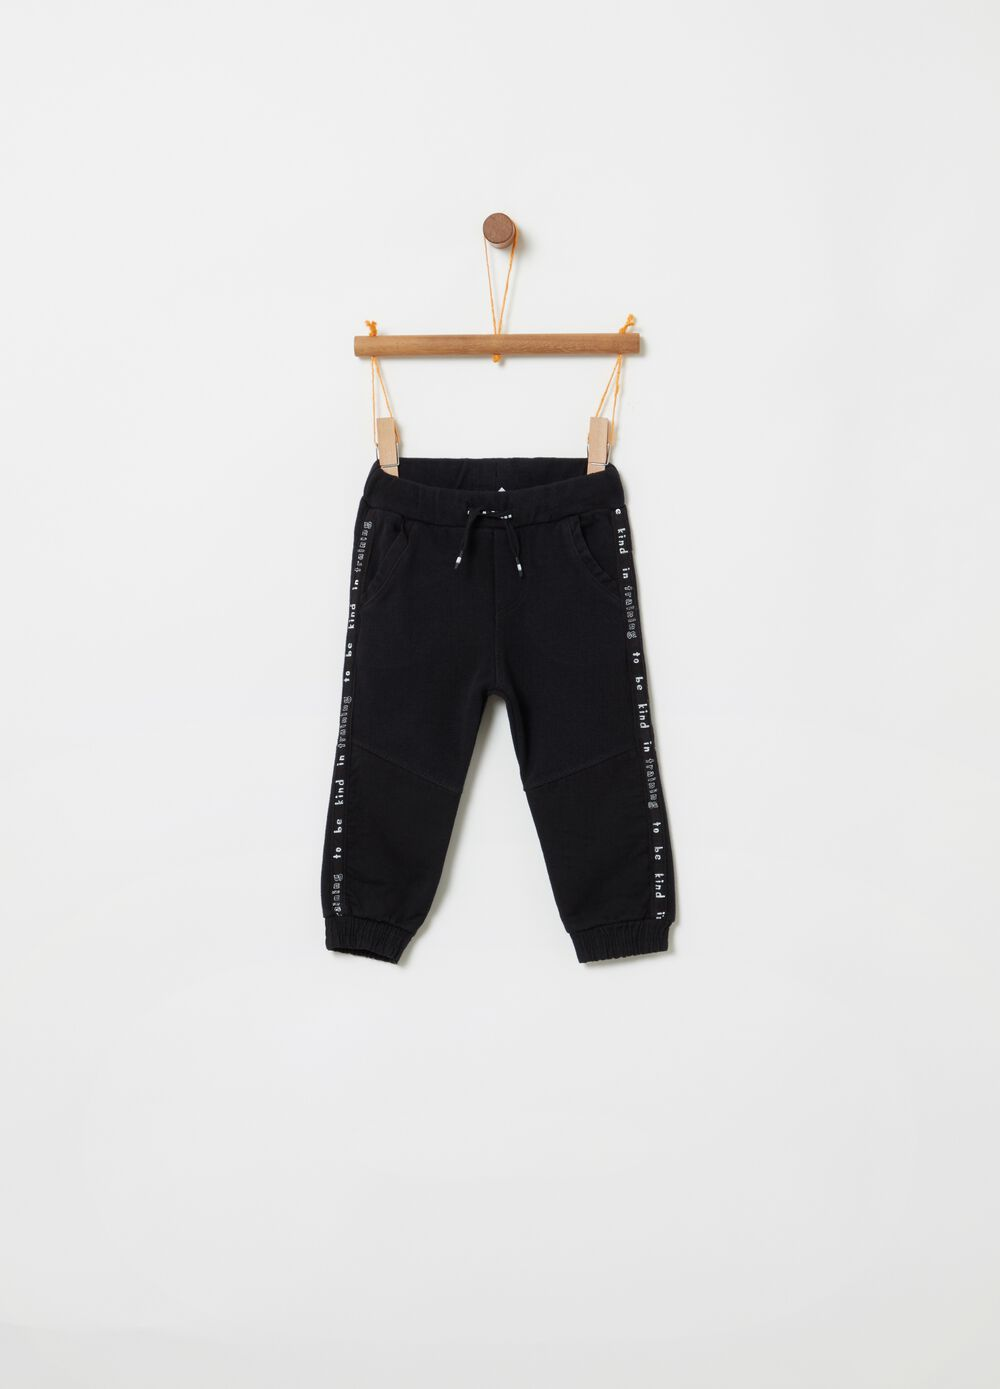 Pique joggers with printed lettering